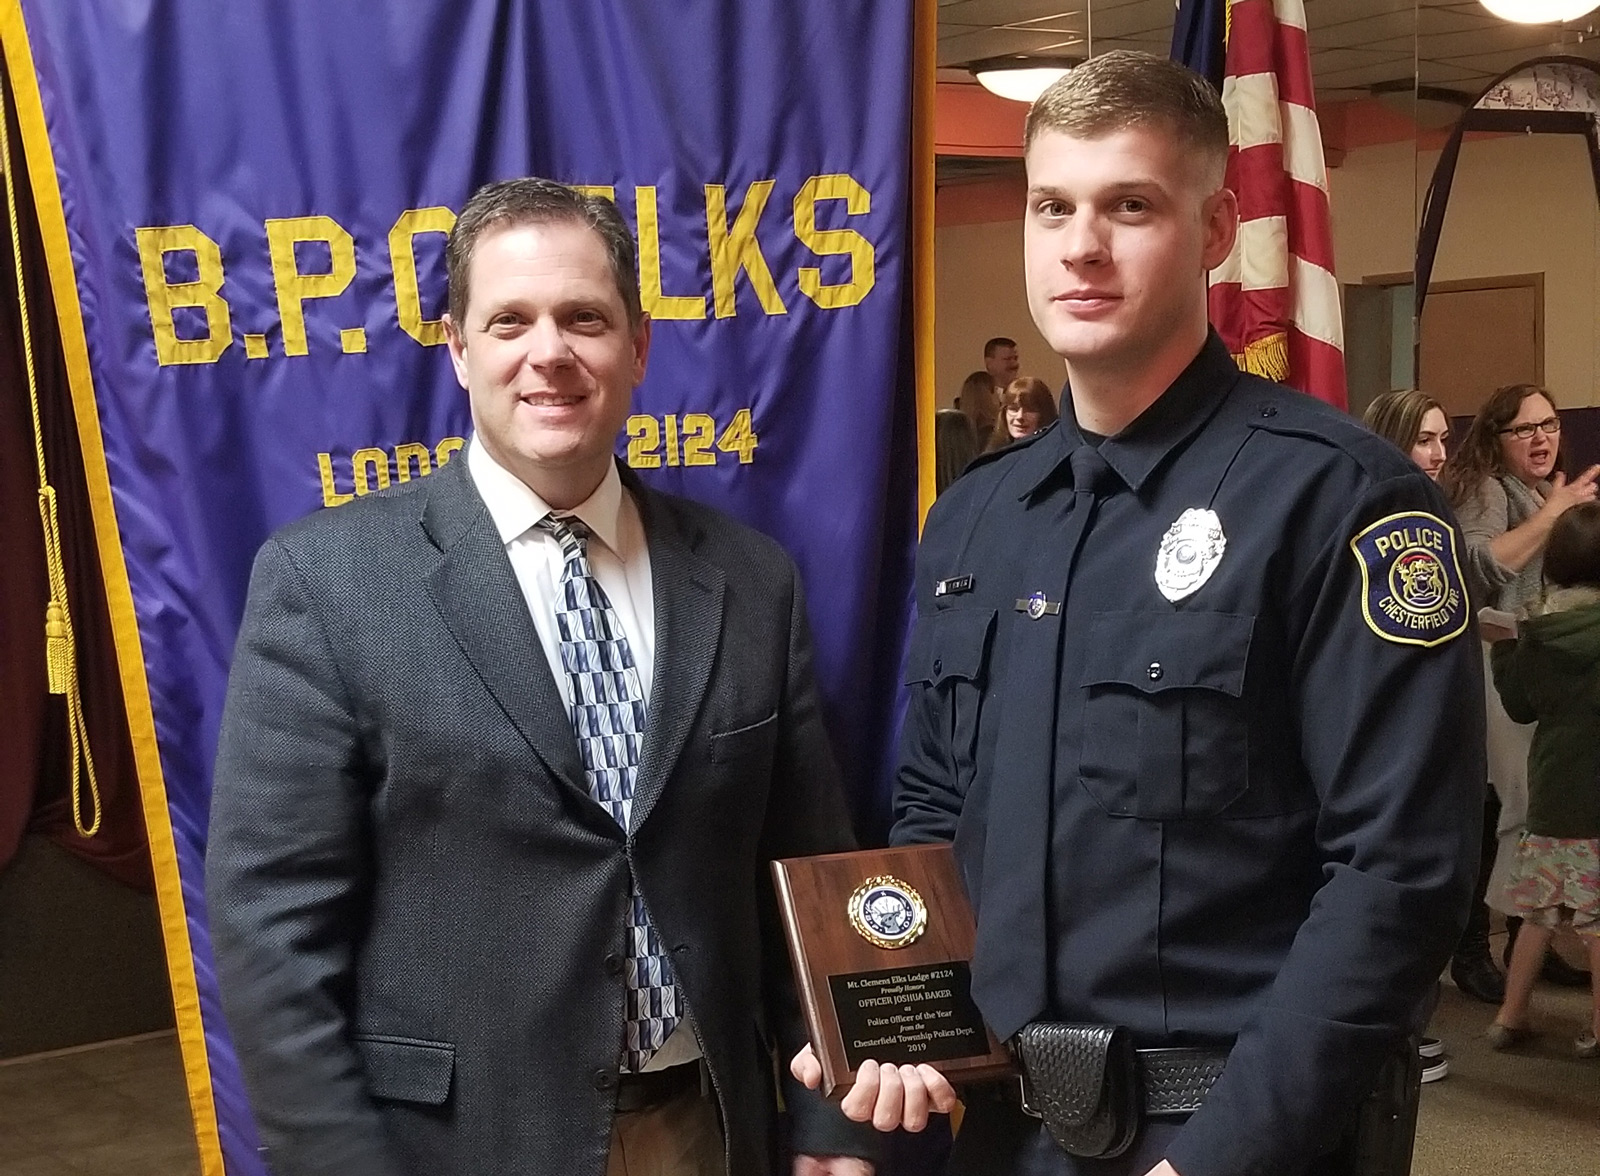 Officer Baker Awarded 'Officer of the Year' by Mount Clemens Elks Lodge